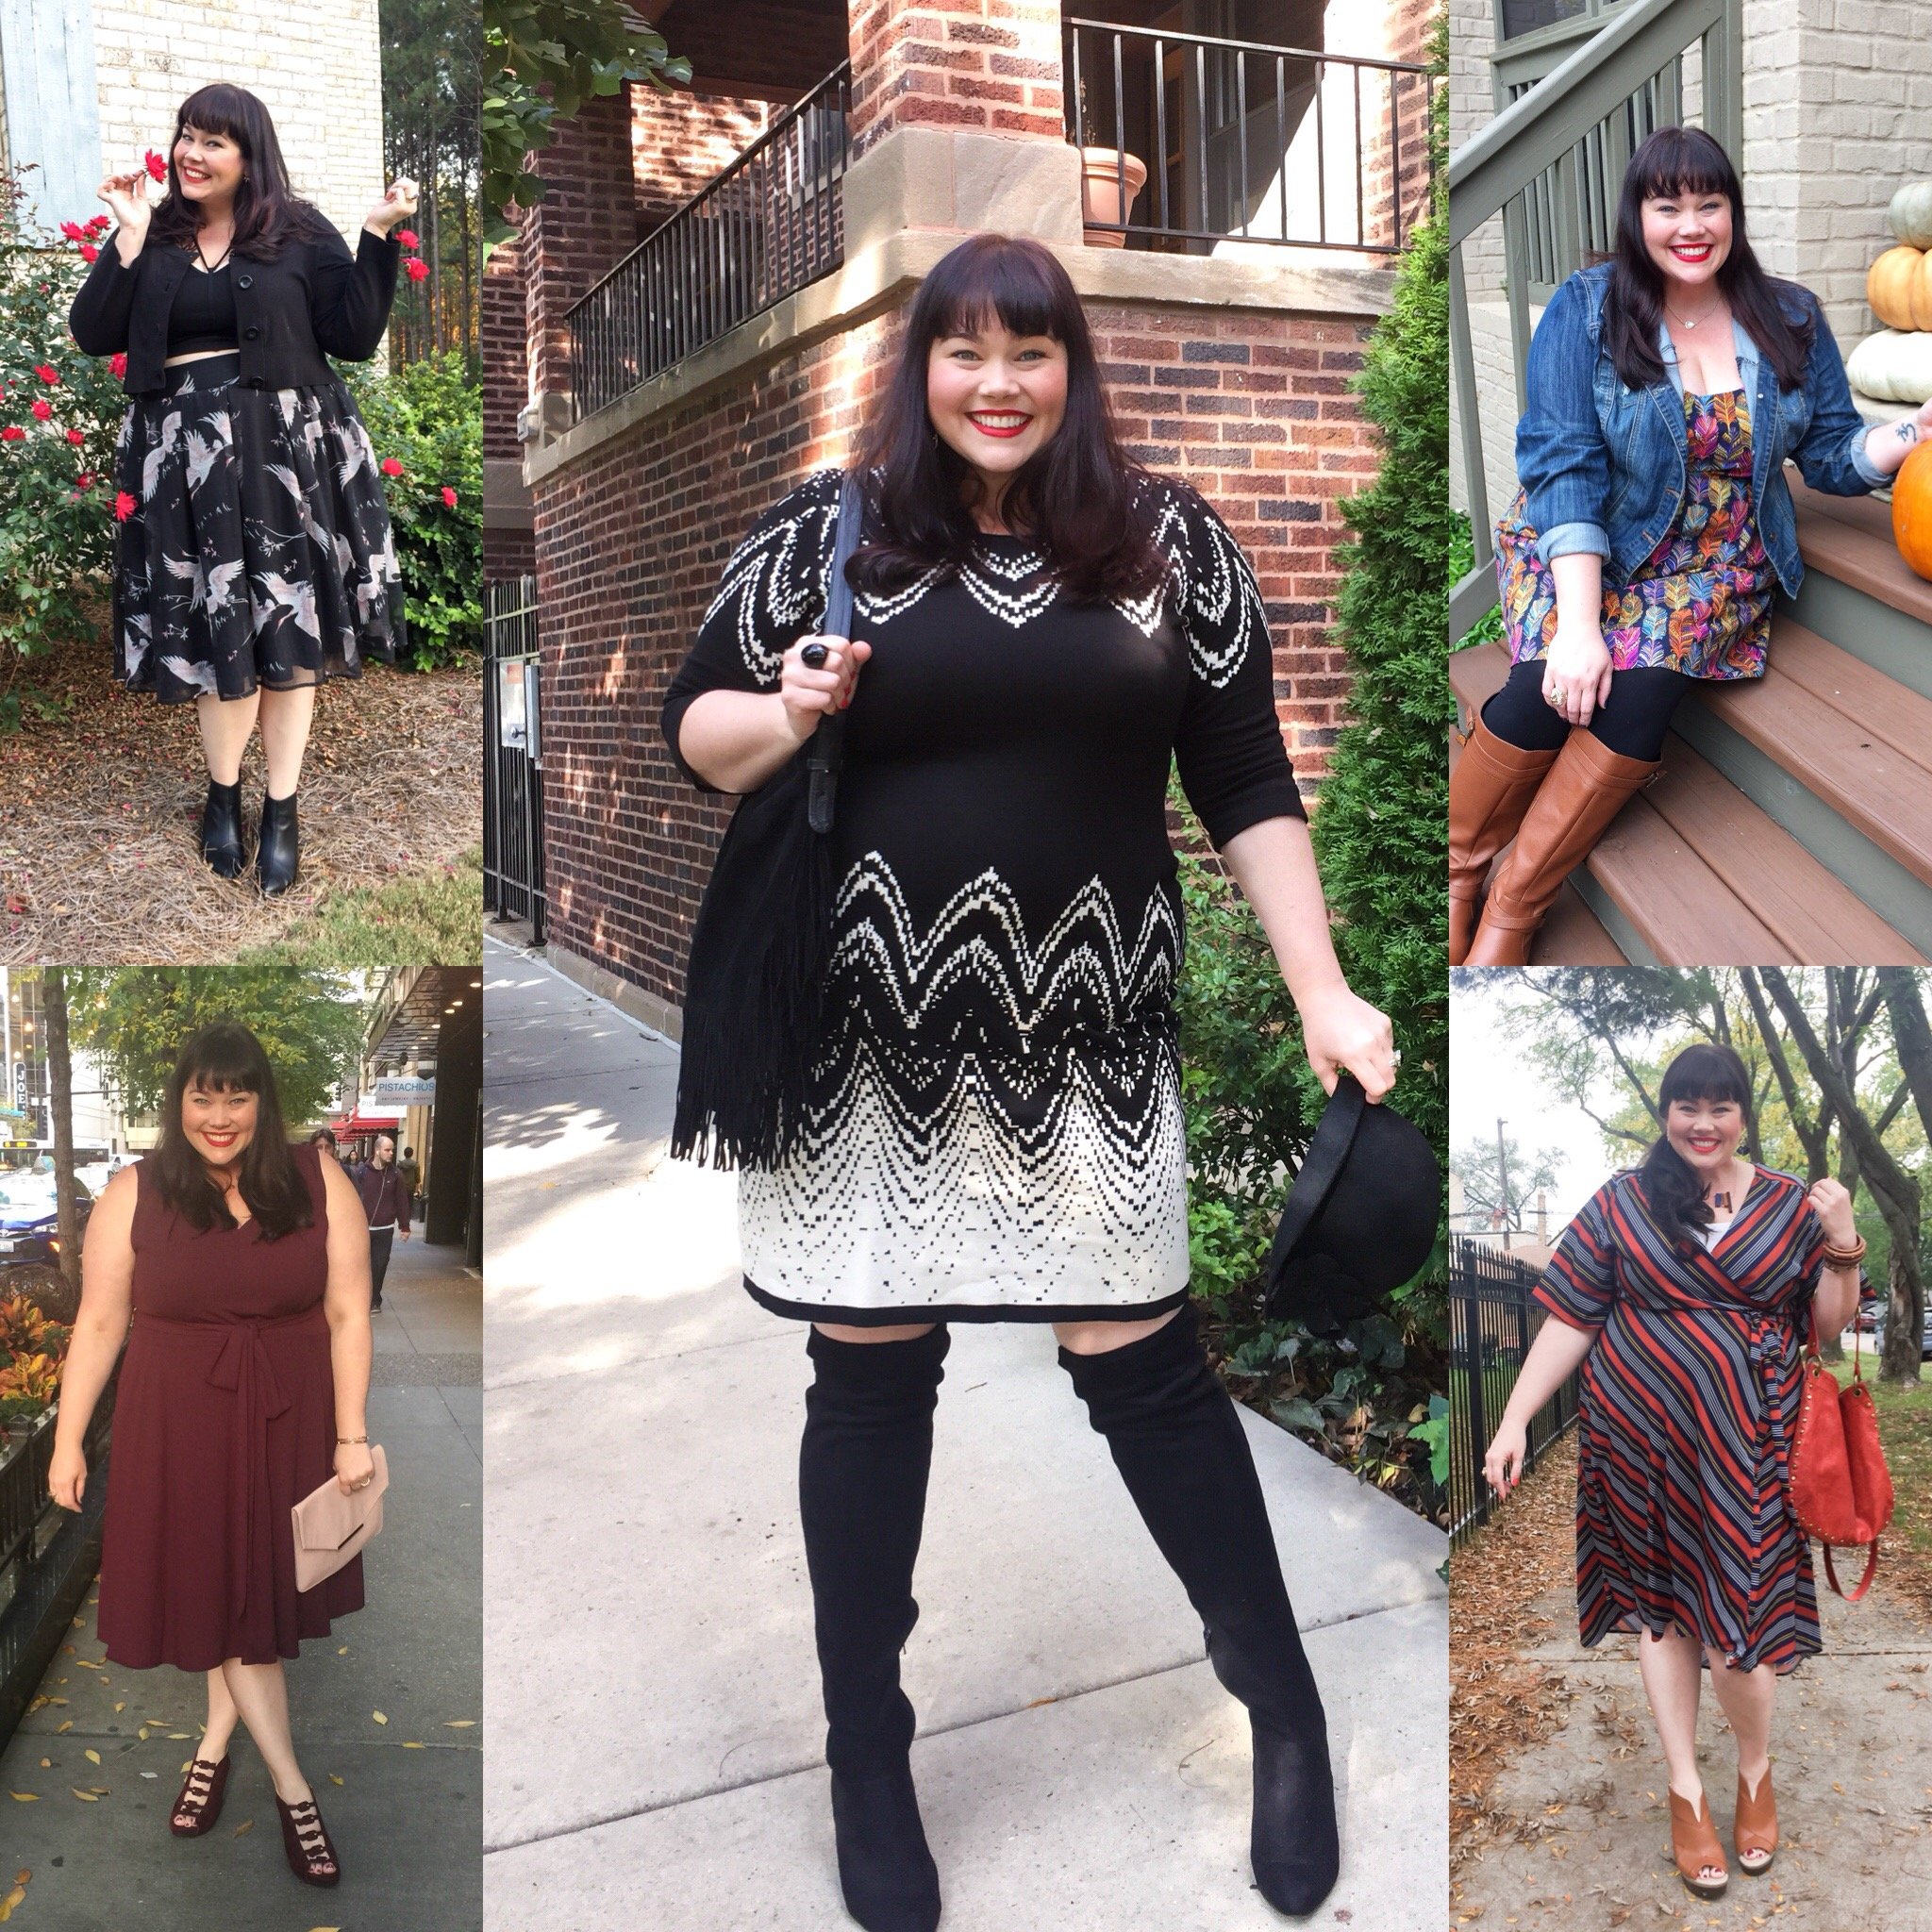 Gwynnie Bee Plus Size Clothing Haul – October